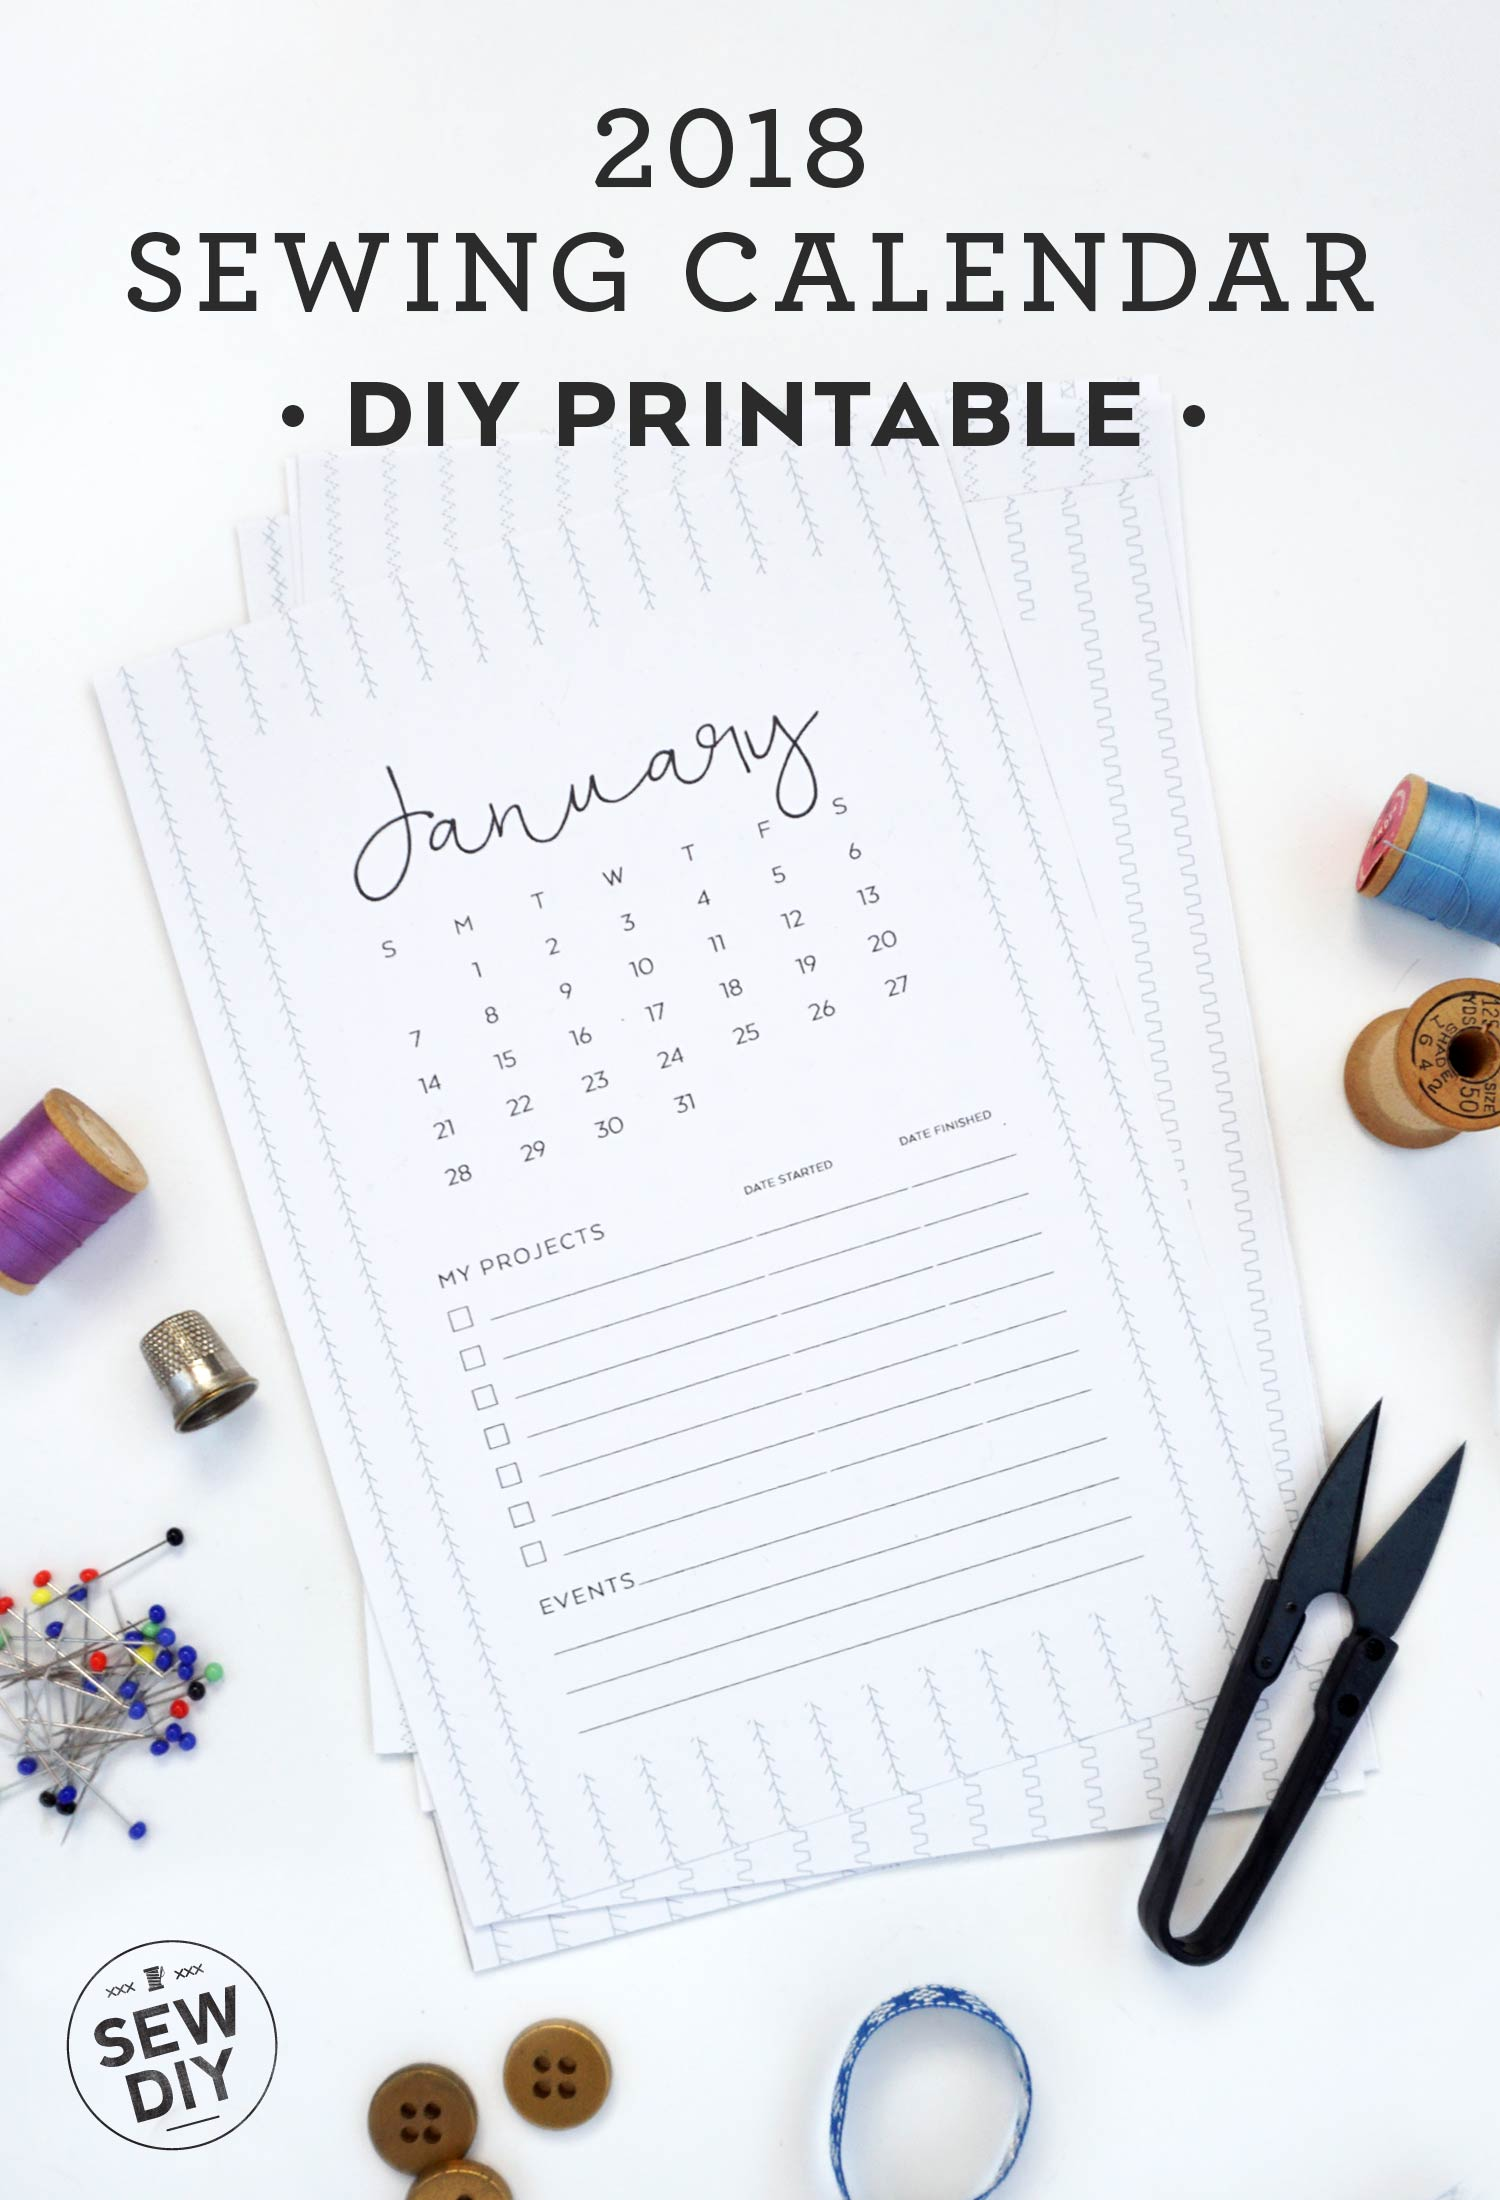 Free DIY Printable 2018 Sewing Calendar | Sew DIY